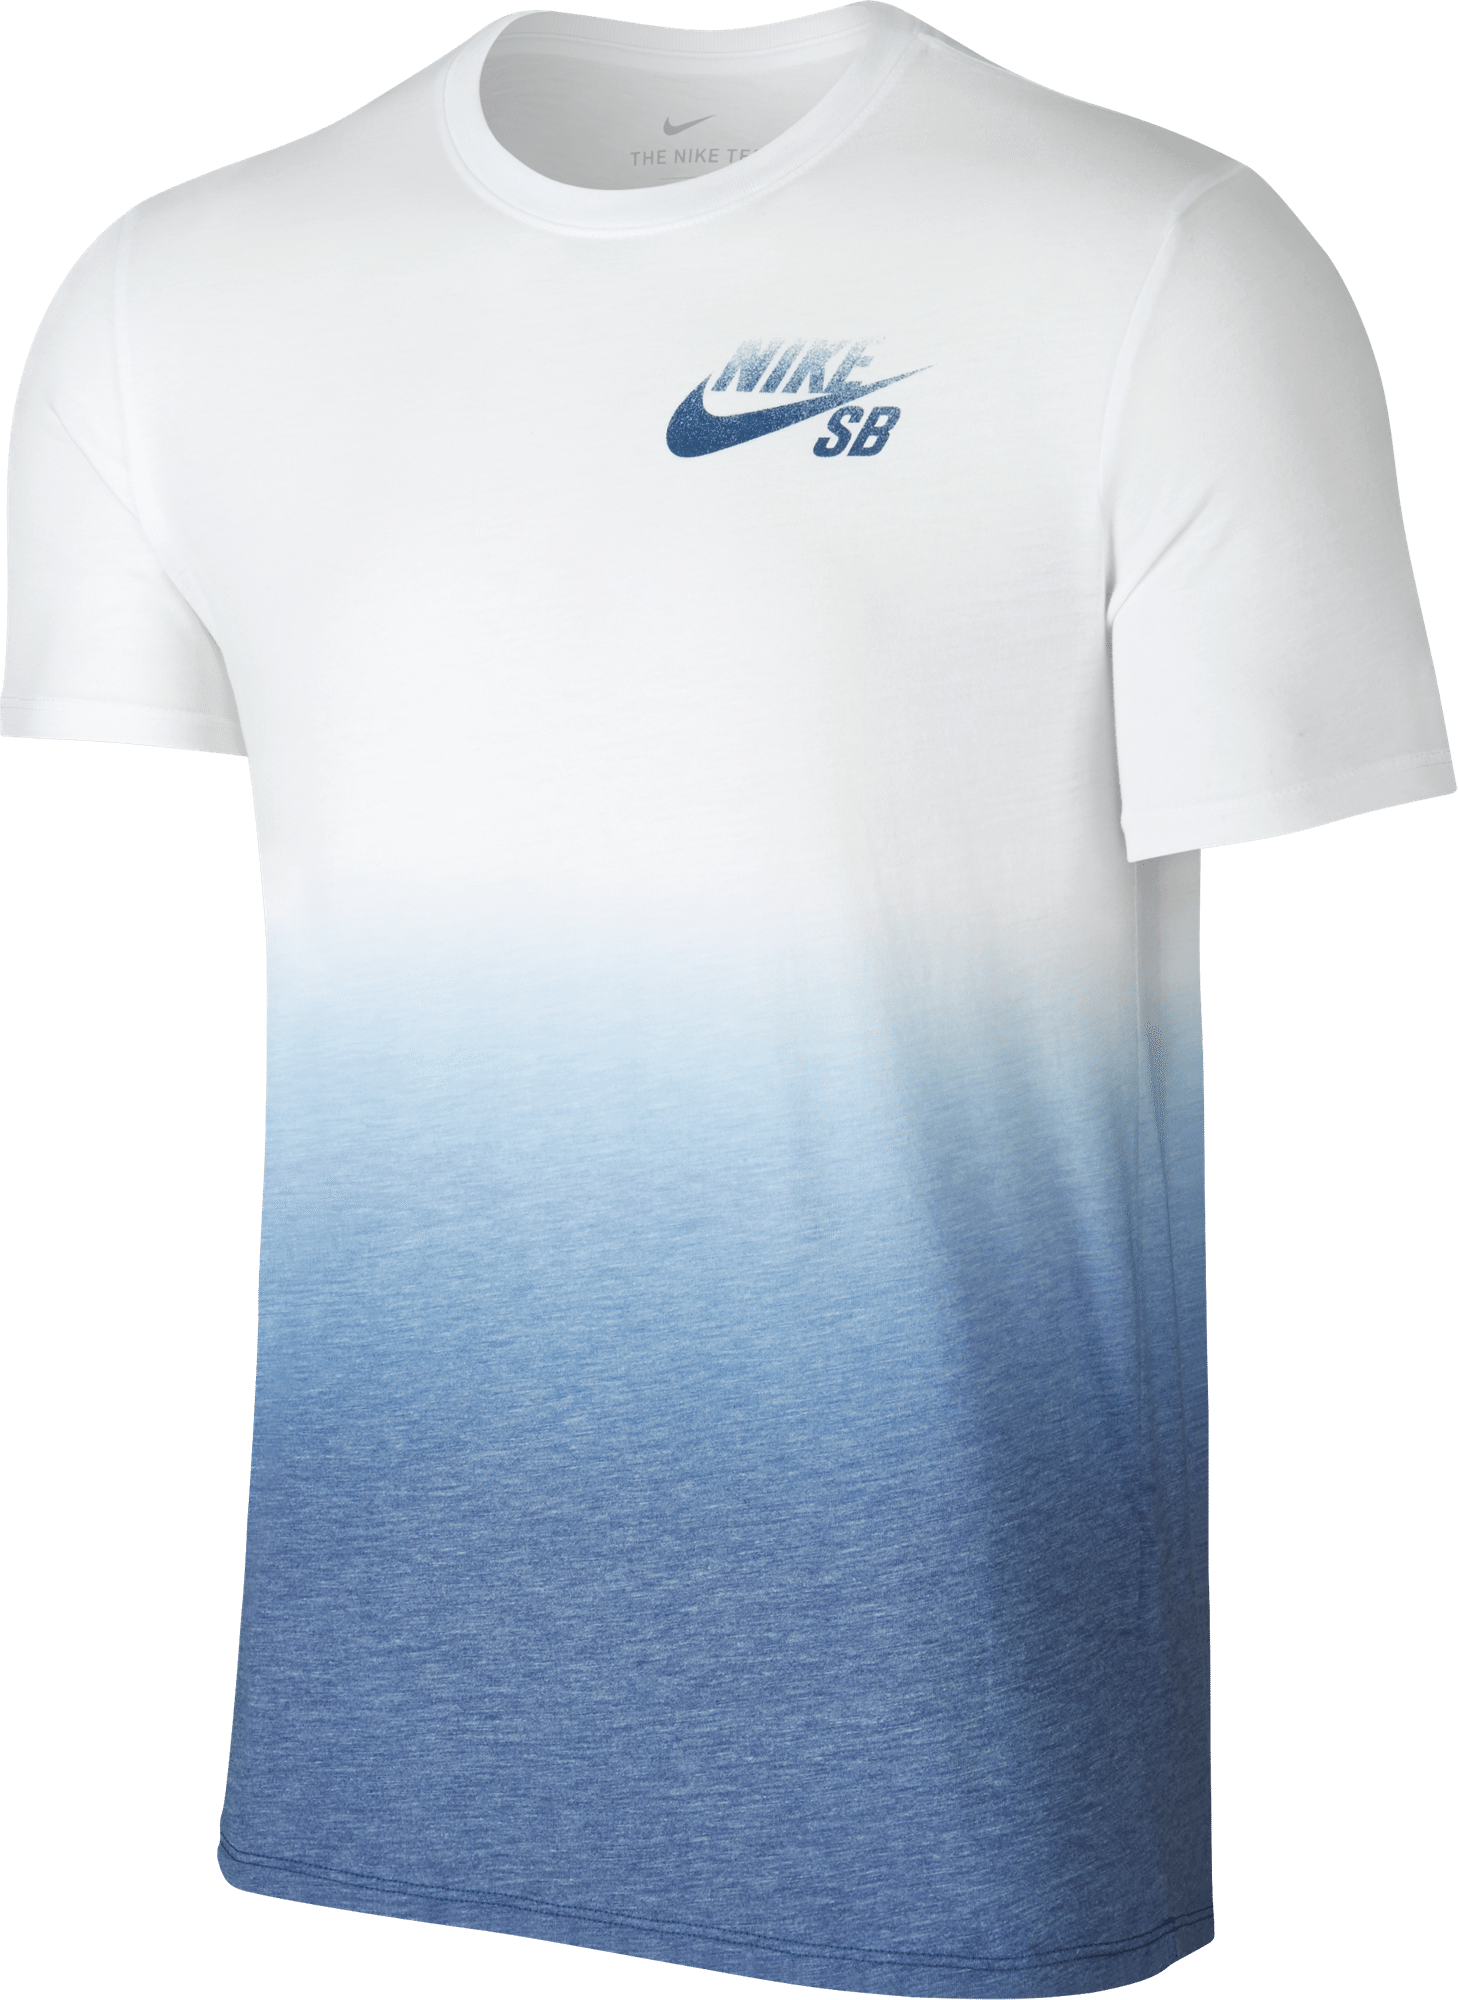 Nike sb dri blend dip dye t shirt white industrial blue for T shirt company reviews